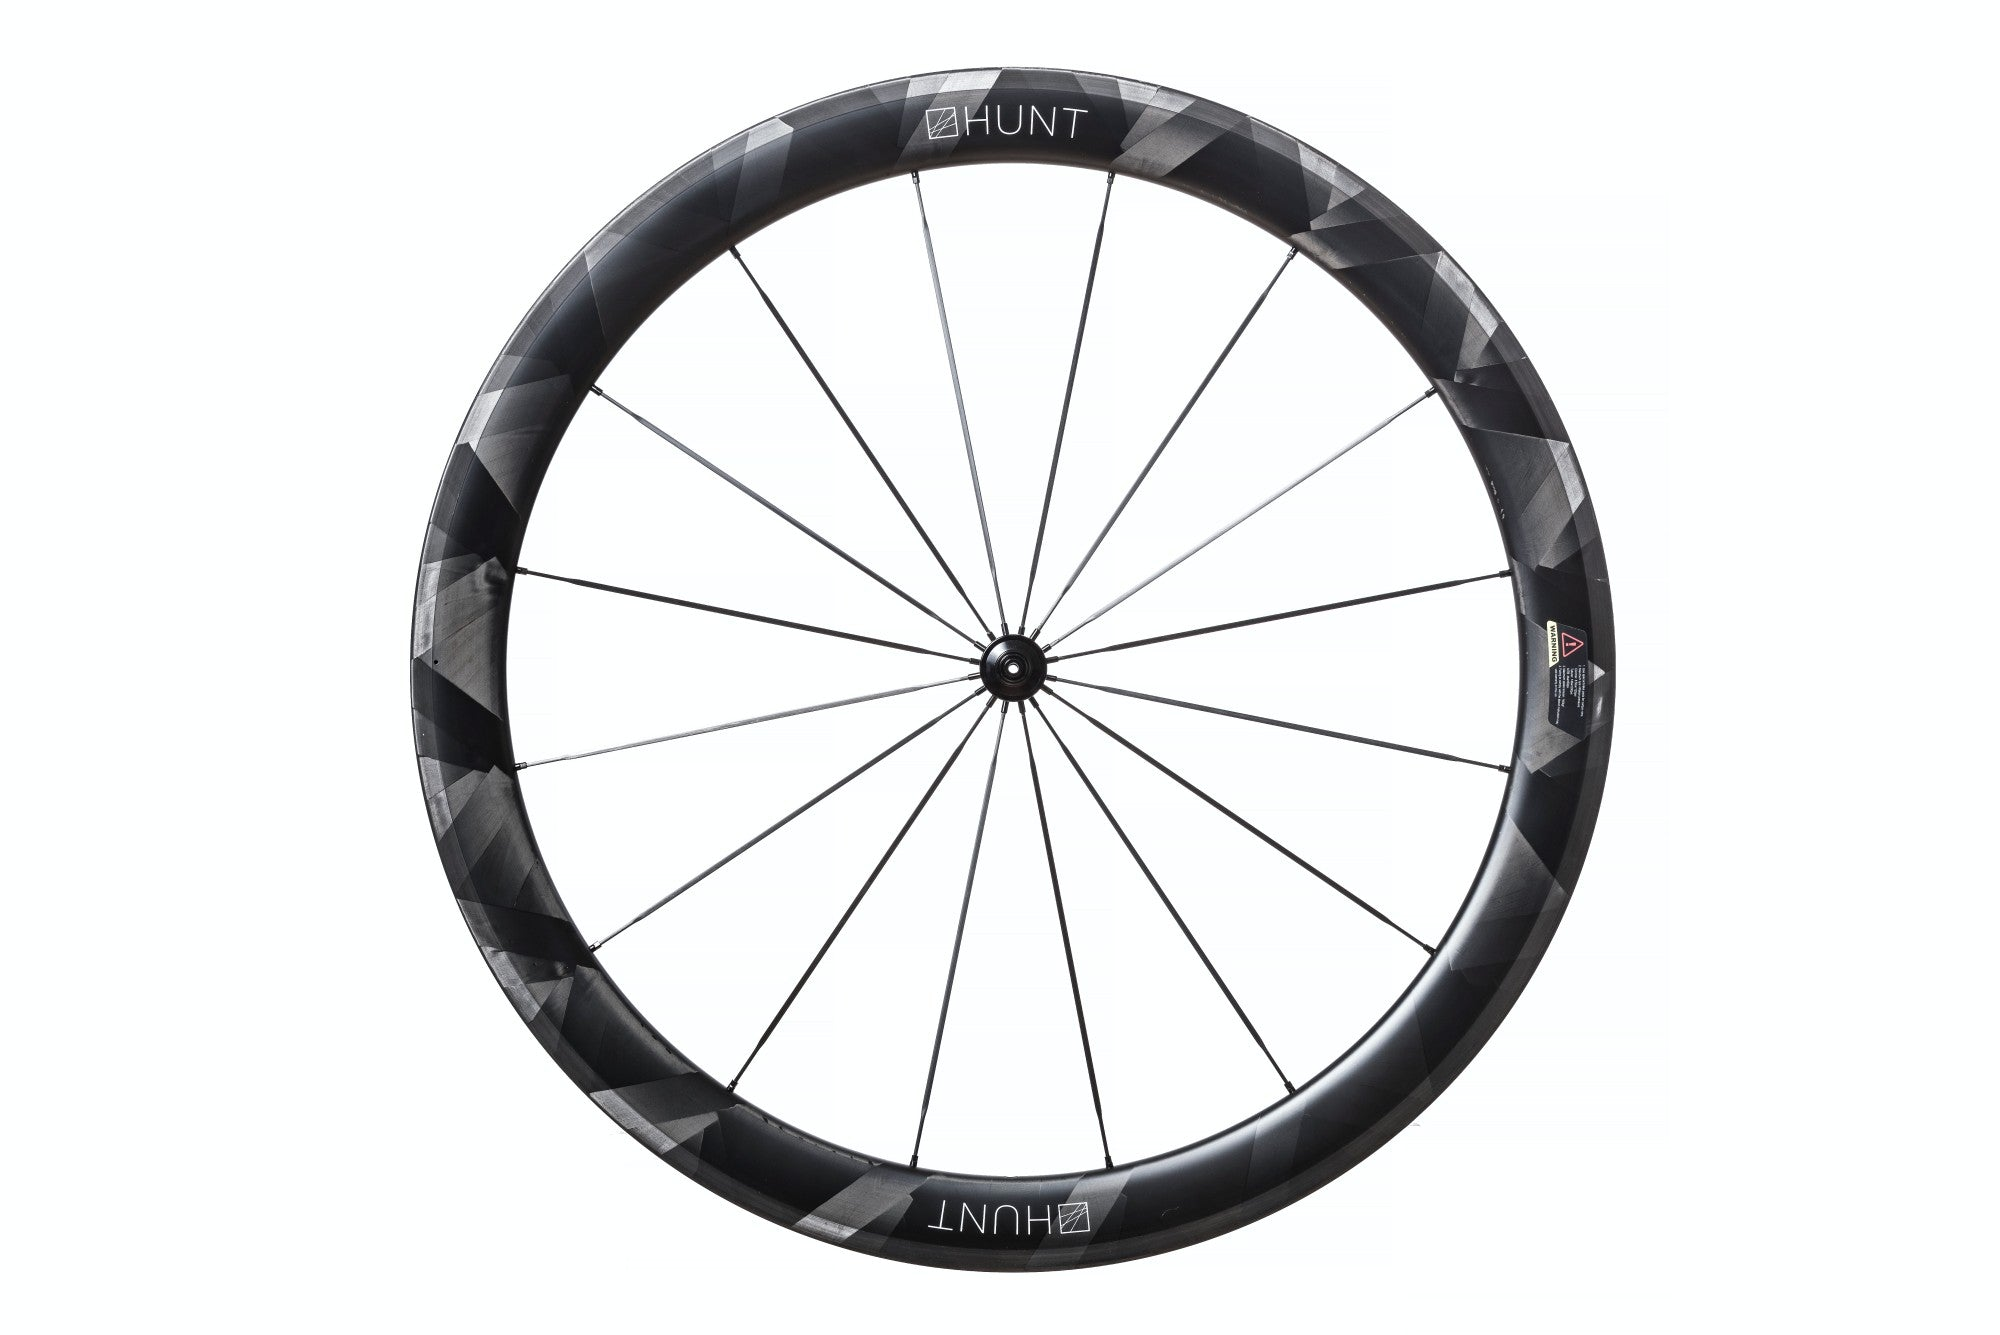 <h1>Rims</h1><i>Using an adaptive filament winding process, which varies thickness and orientation across the rim, these rims achieve a very light weight and excellent transmission of force from the spoke to the rest of the rim. The process also provides additional material to create high strength at the spoke areas while minimising unnecessary weight between the spokes. They are wide at 26mm (19mm int.) which creates a great tyre profile, resulting in excellent grip and lower rolling resistance.</i>